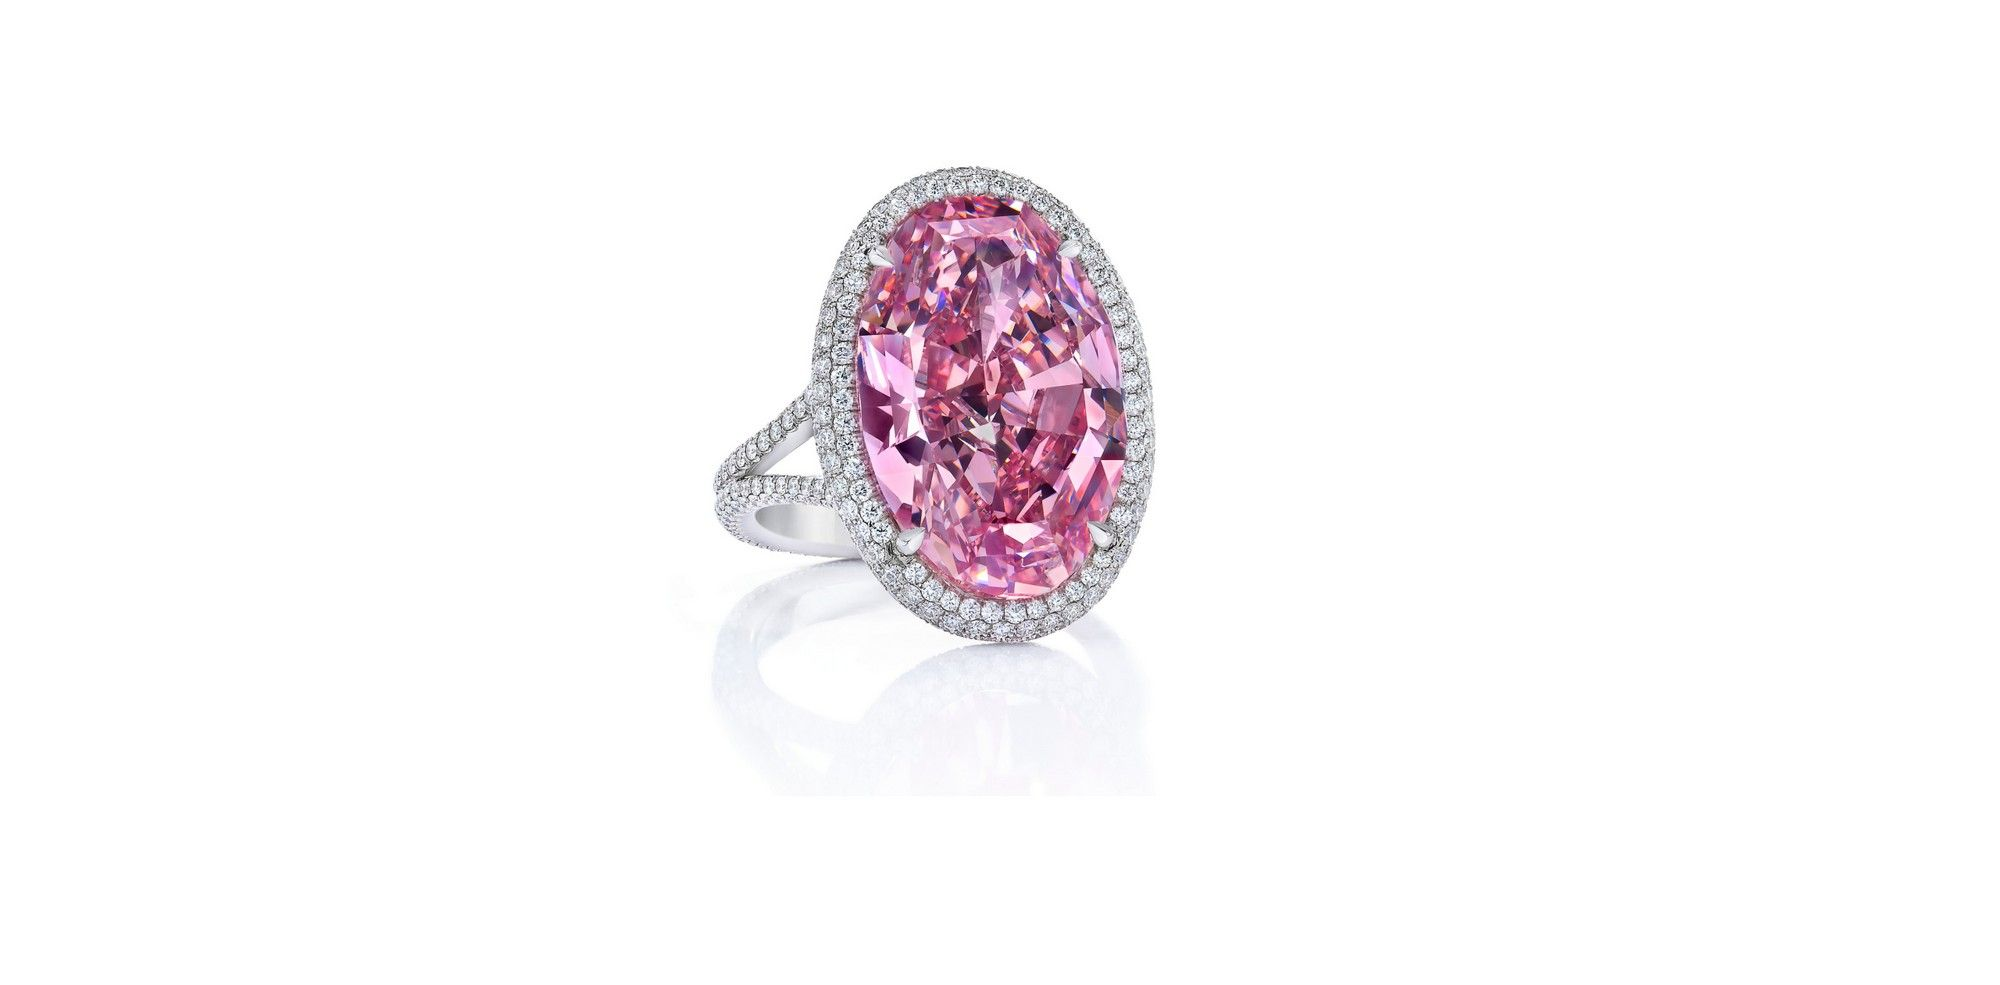 """The Pink Promise"" Diamond Ring Fetches US$32 Million"